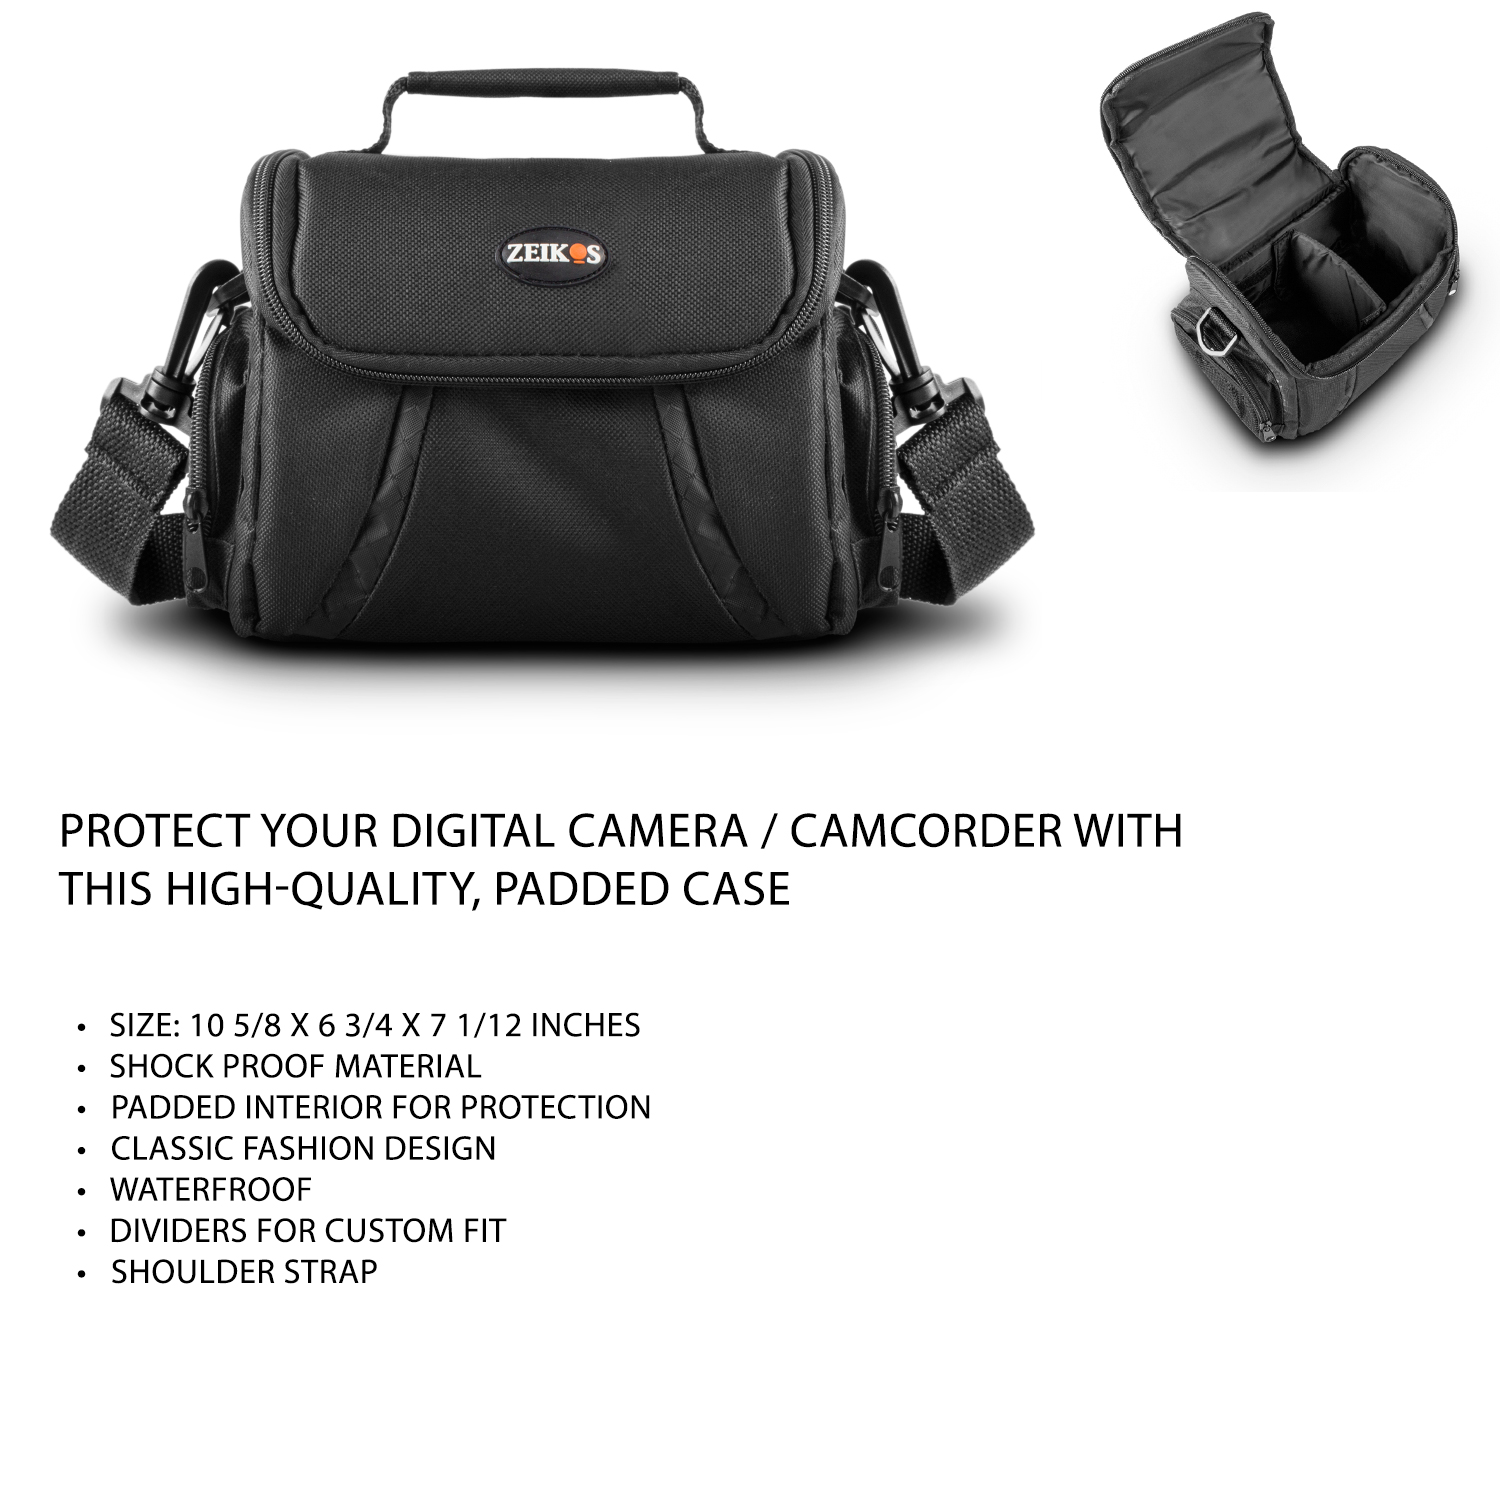 900maH Case SX420 is Digital Camera Includes Replacement SX410 is NB-11L Battery AC//DC Charger Screen Protectors Essential Accessories Kit for Canon Powershot SX400 is More 50 Tripod